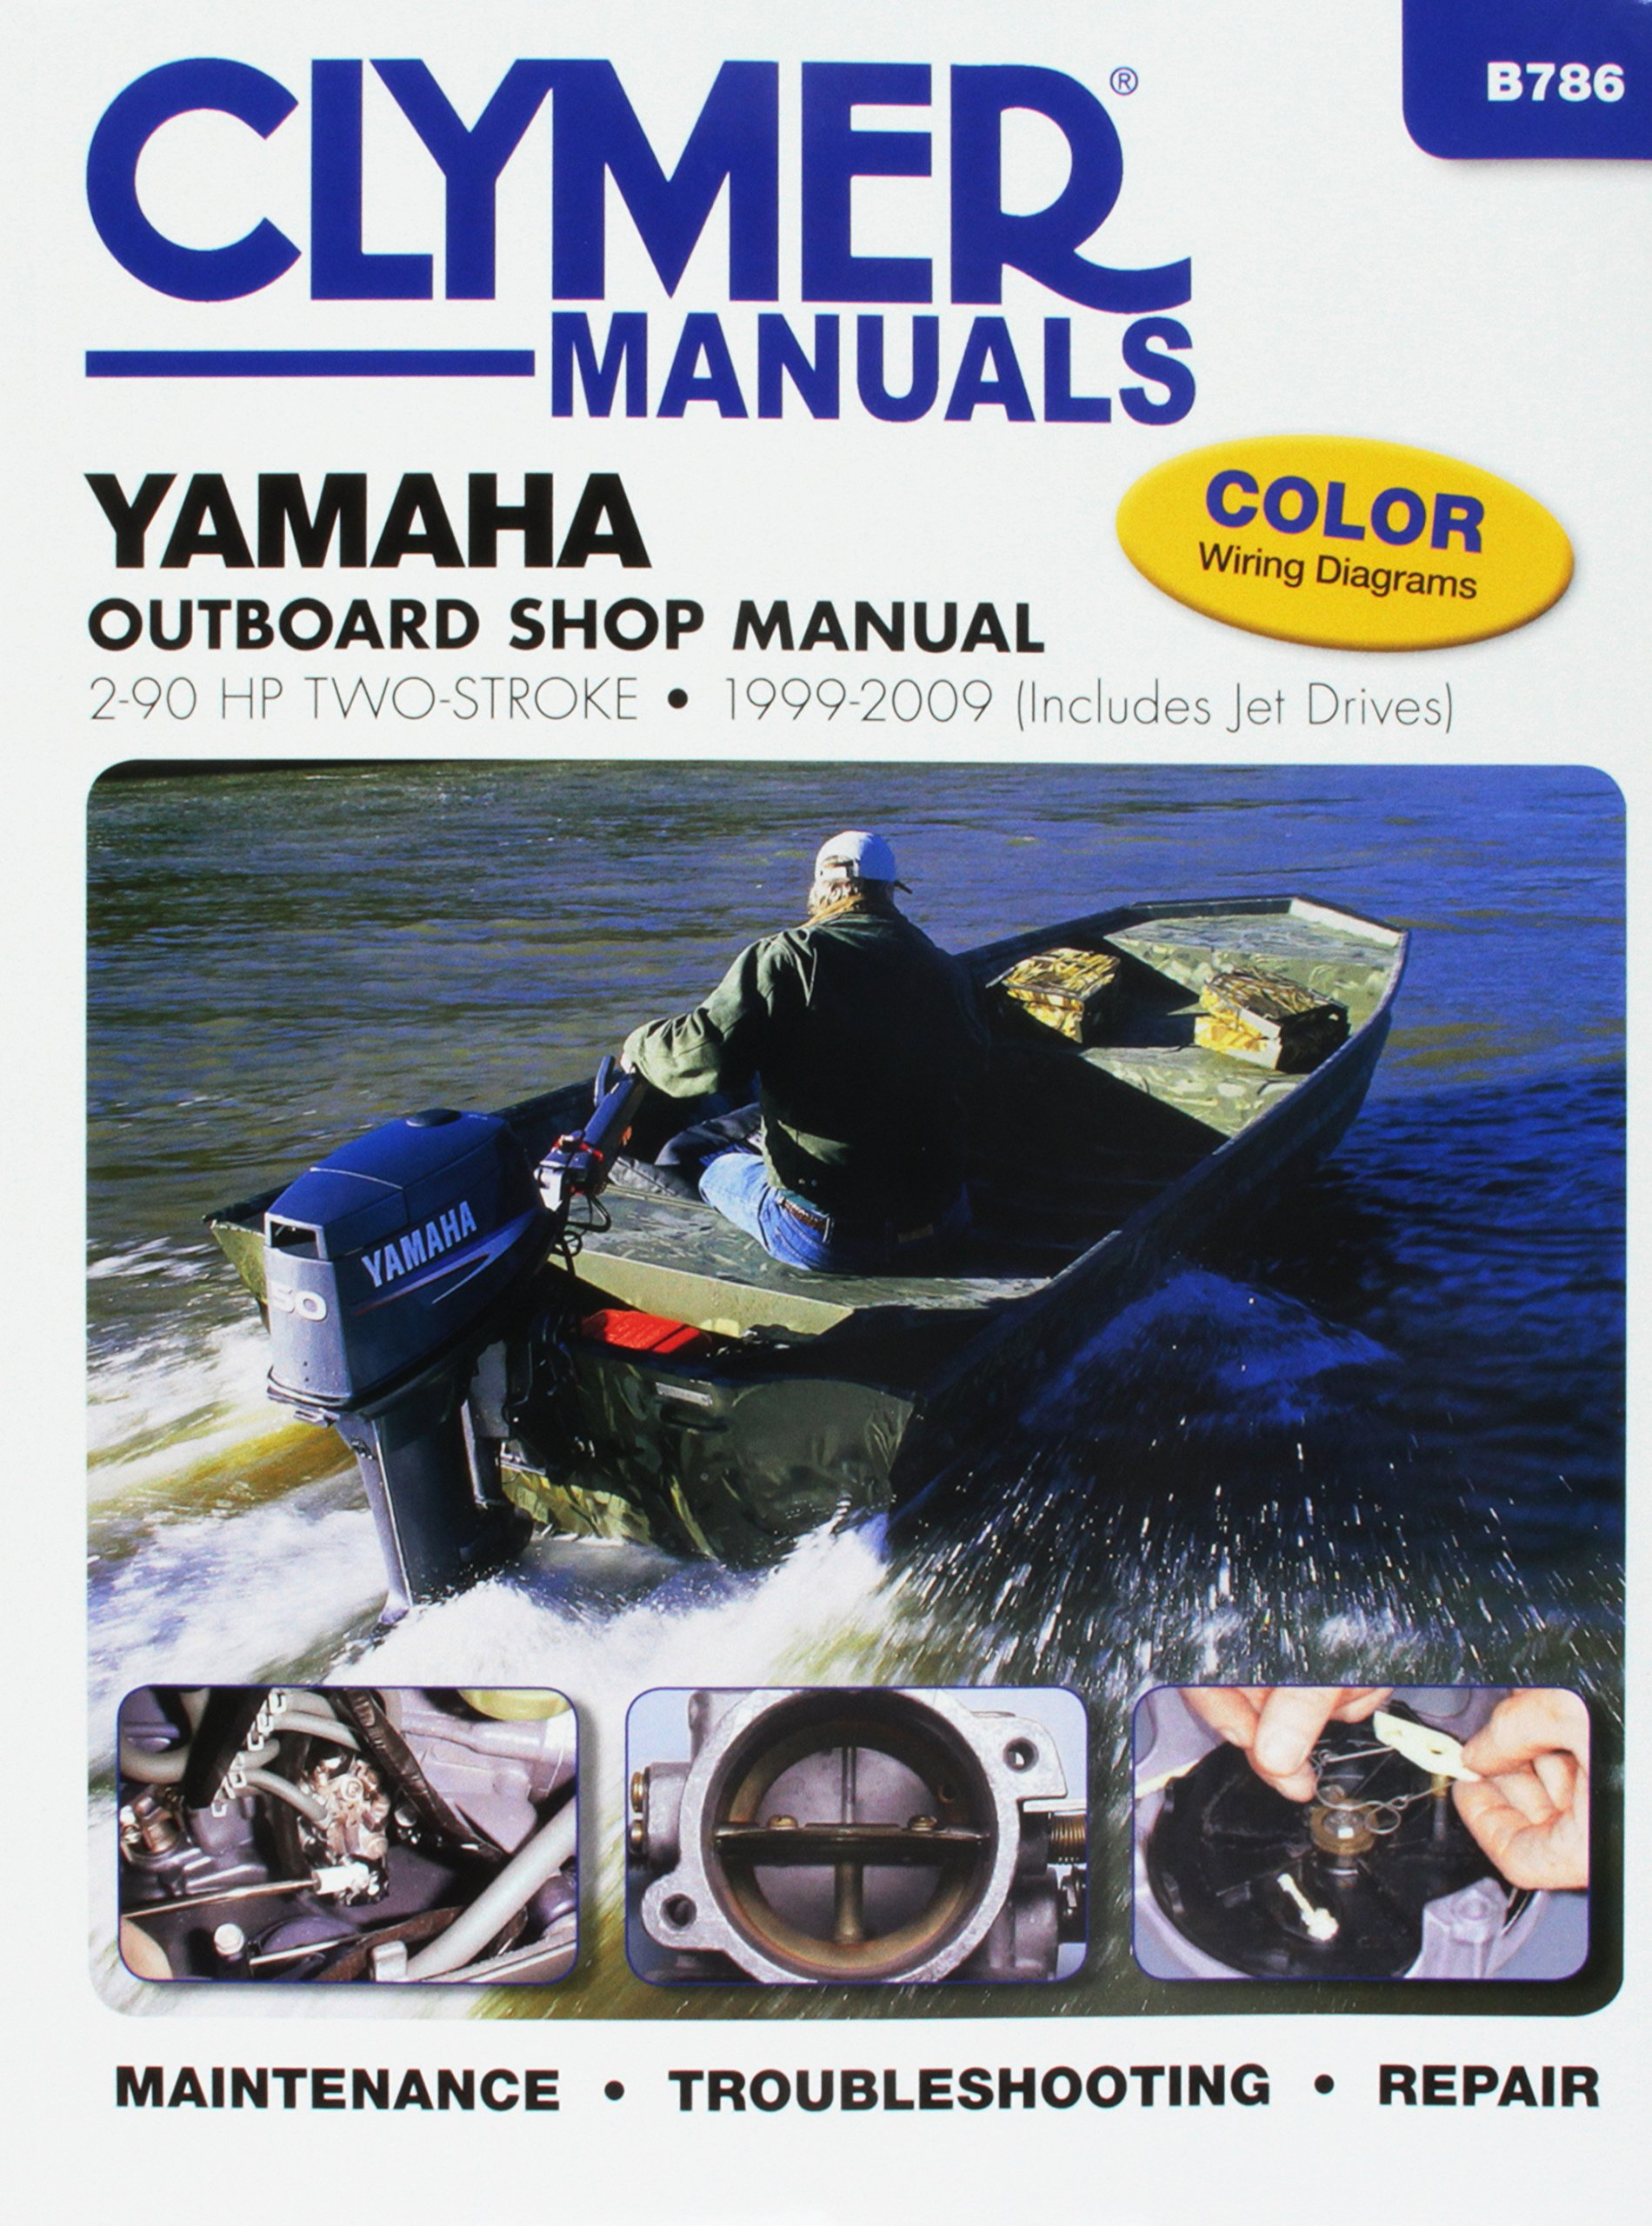 Yamaha Outboards 2-90 hp Two-strokes 1999-2009 (Clymer Marine) by Haynes Manuals N. America, Inc.